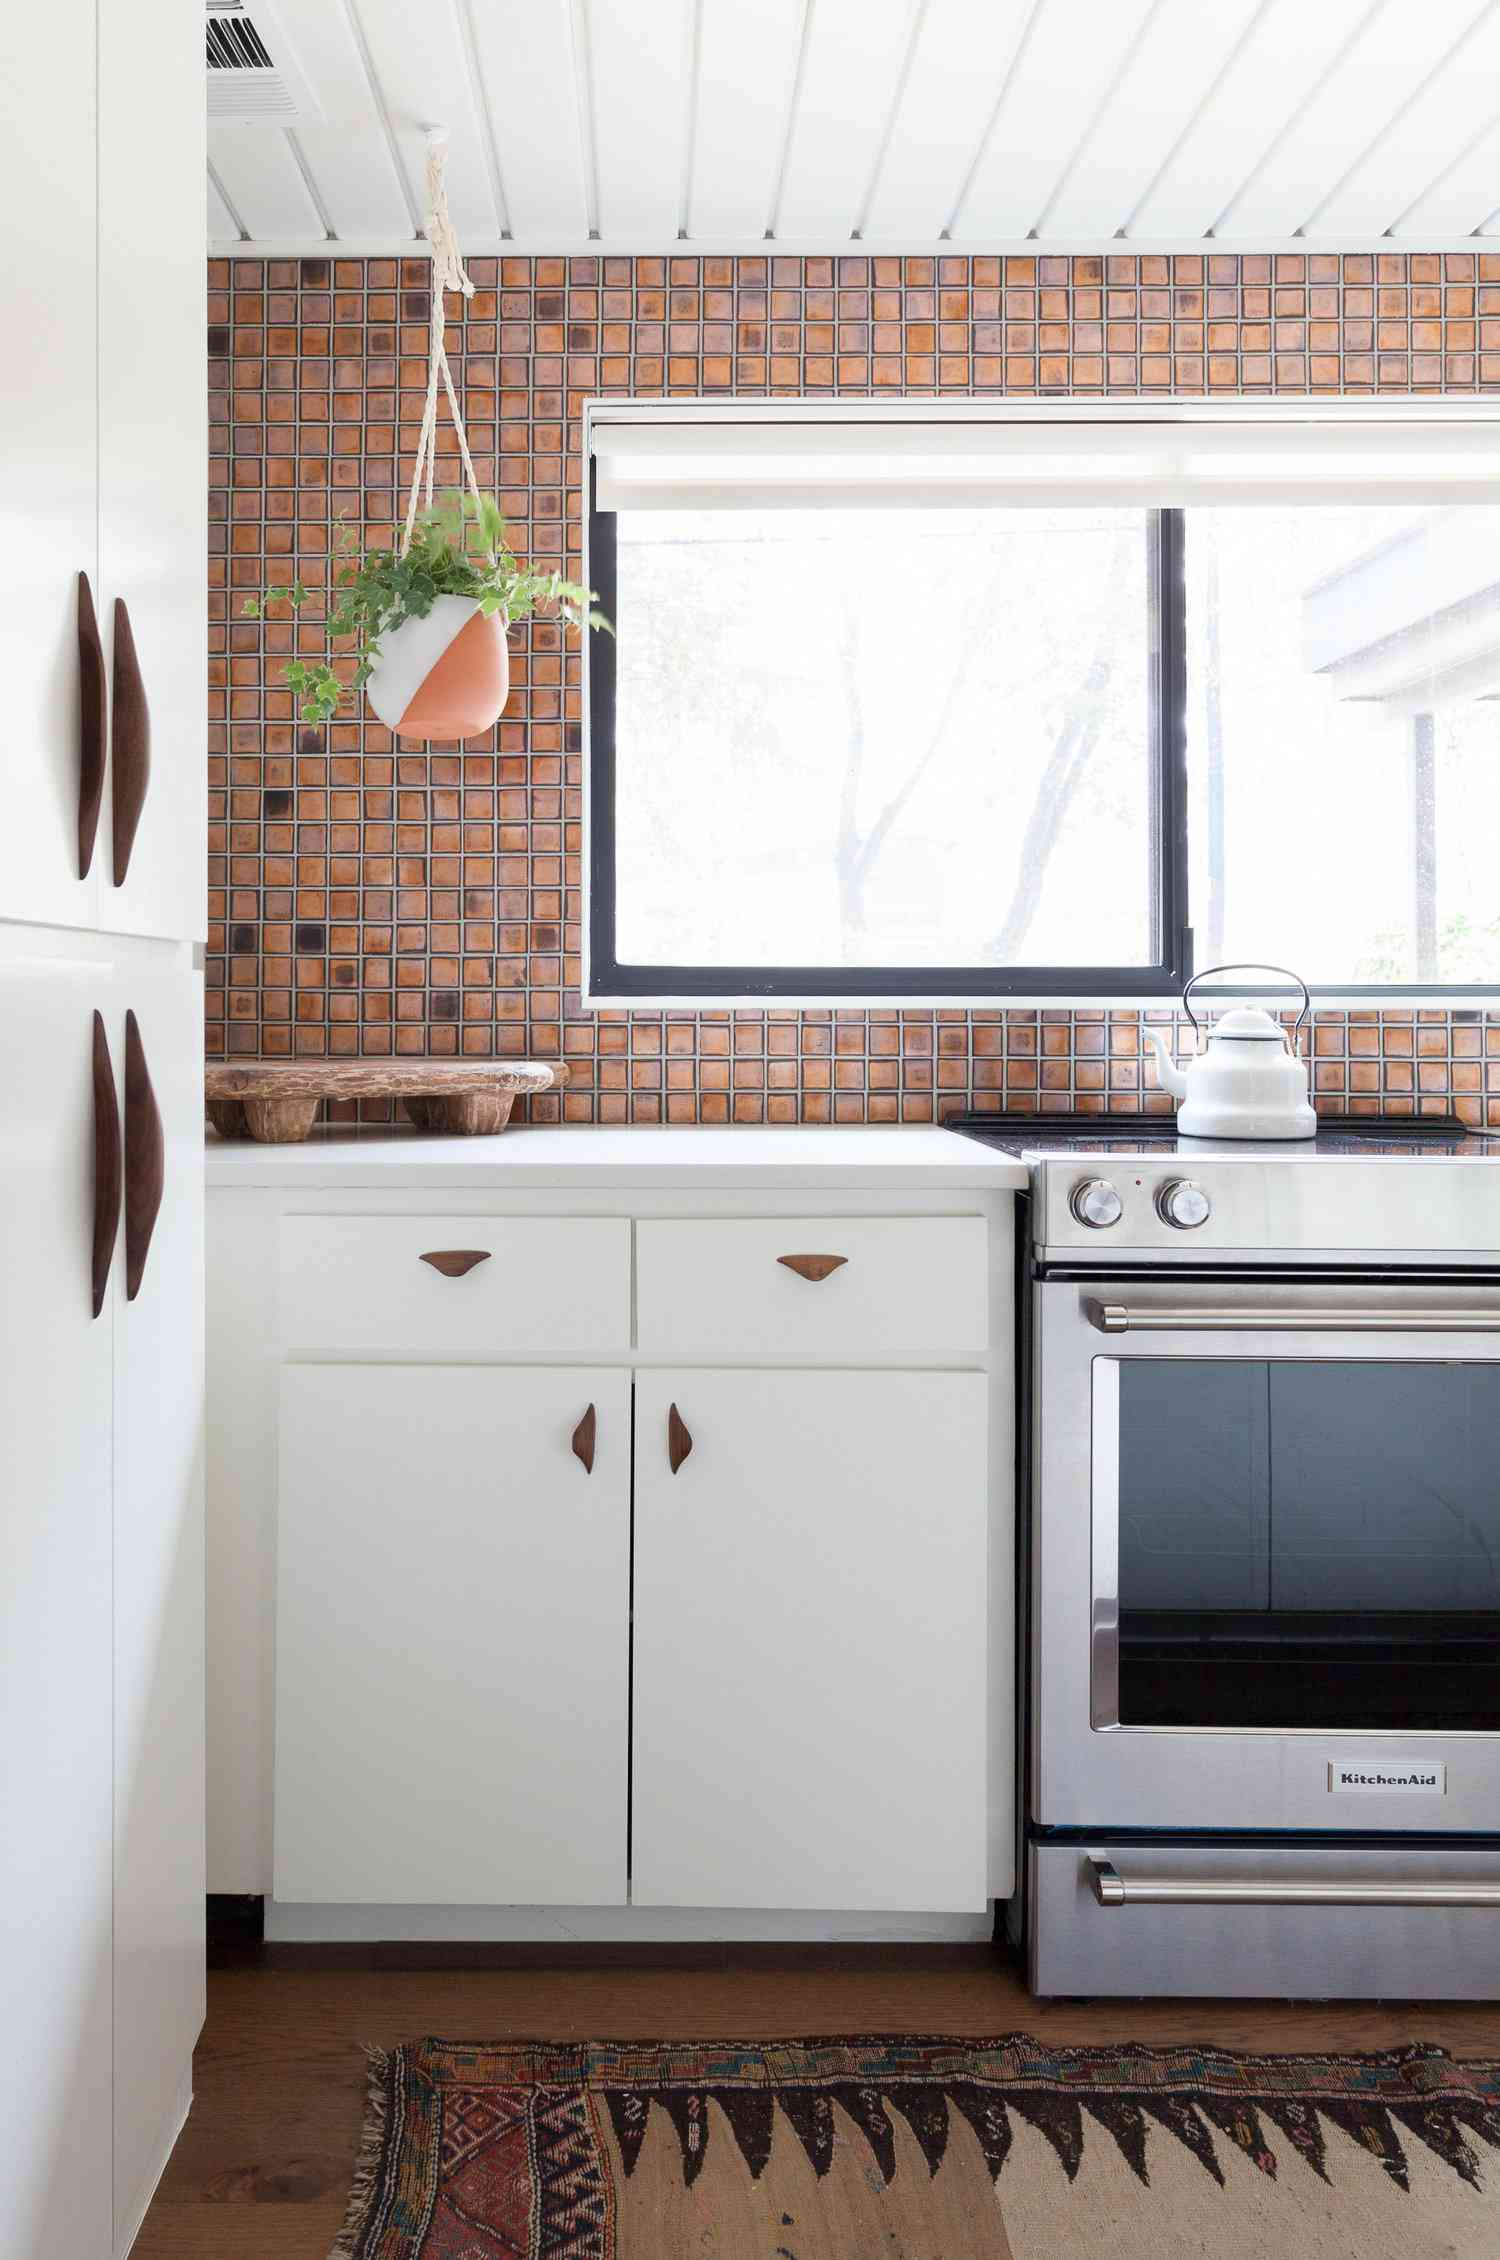 A kitchen with a vibrant backsplash and a printed rug